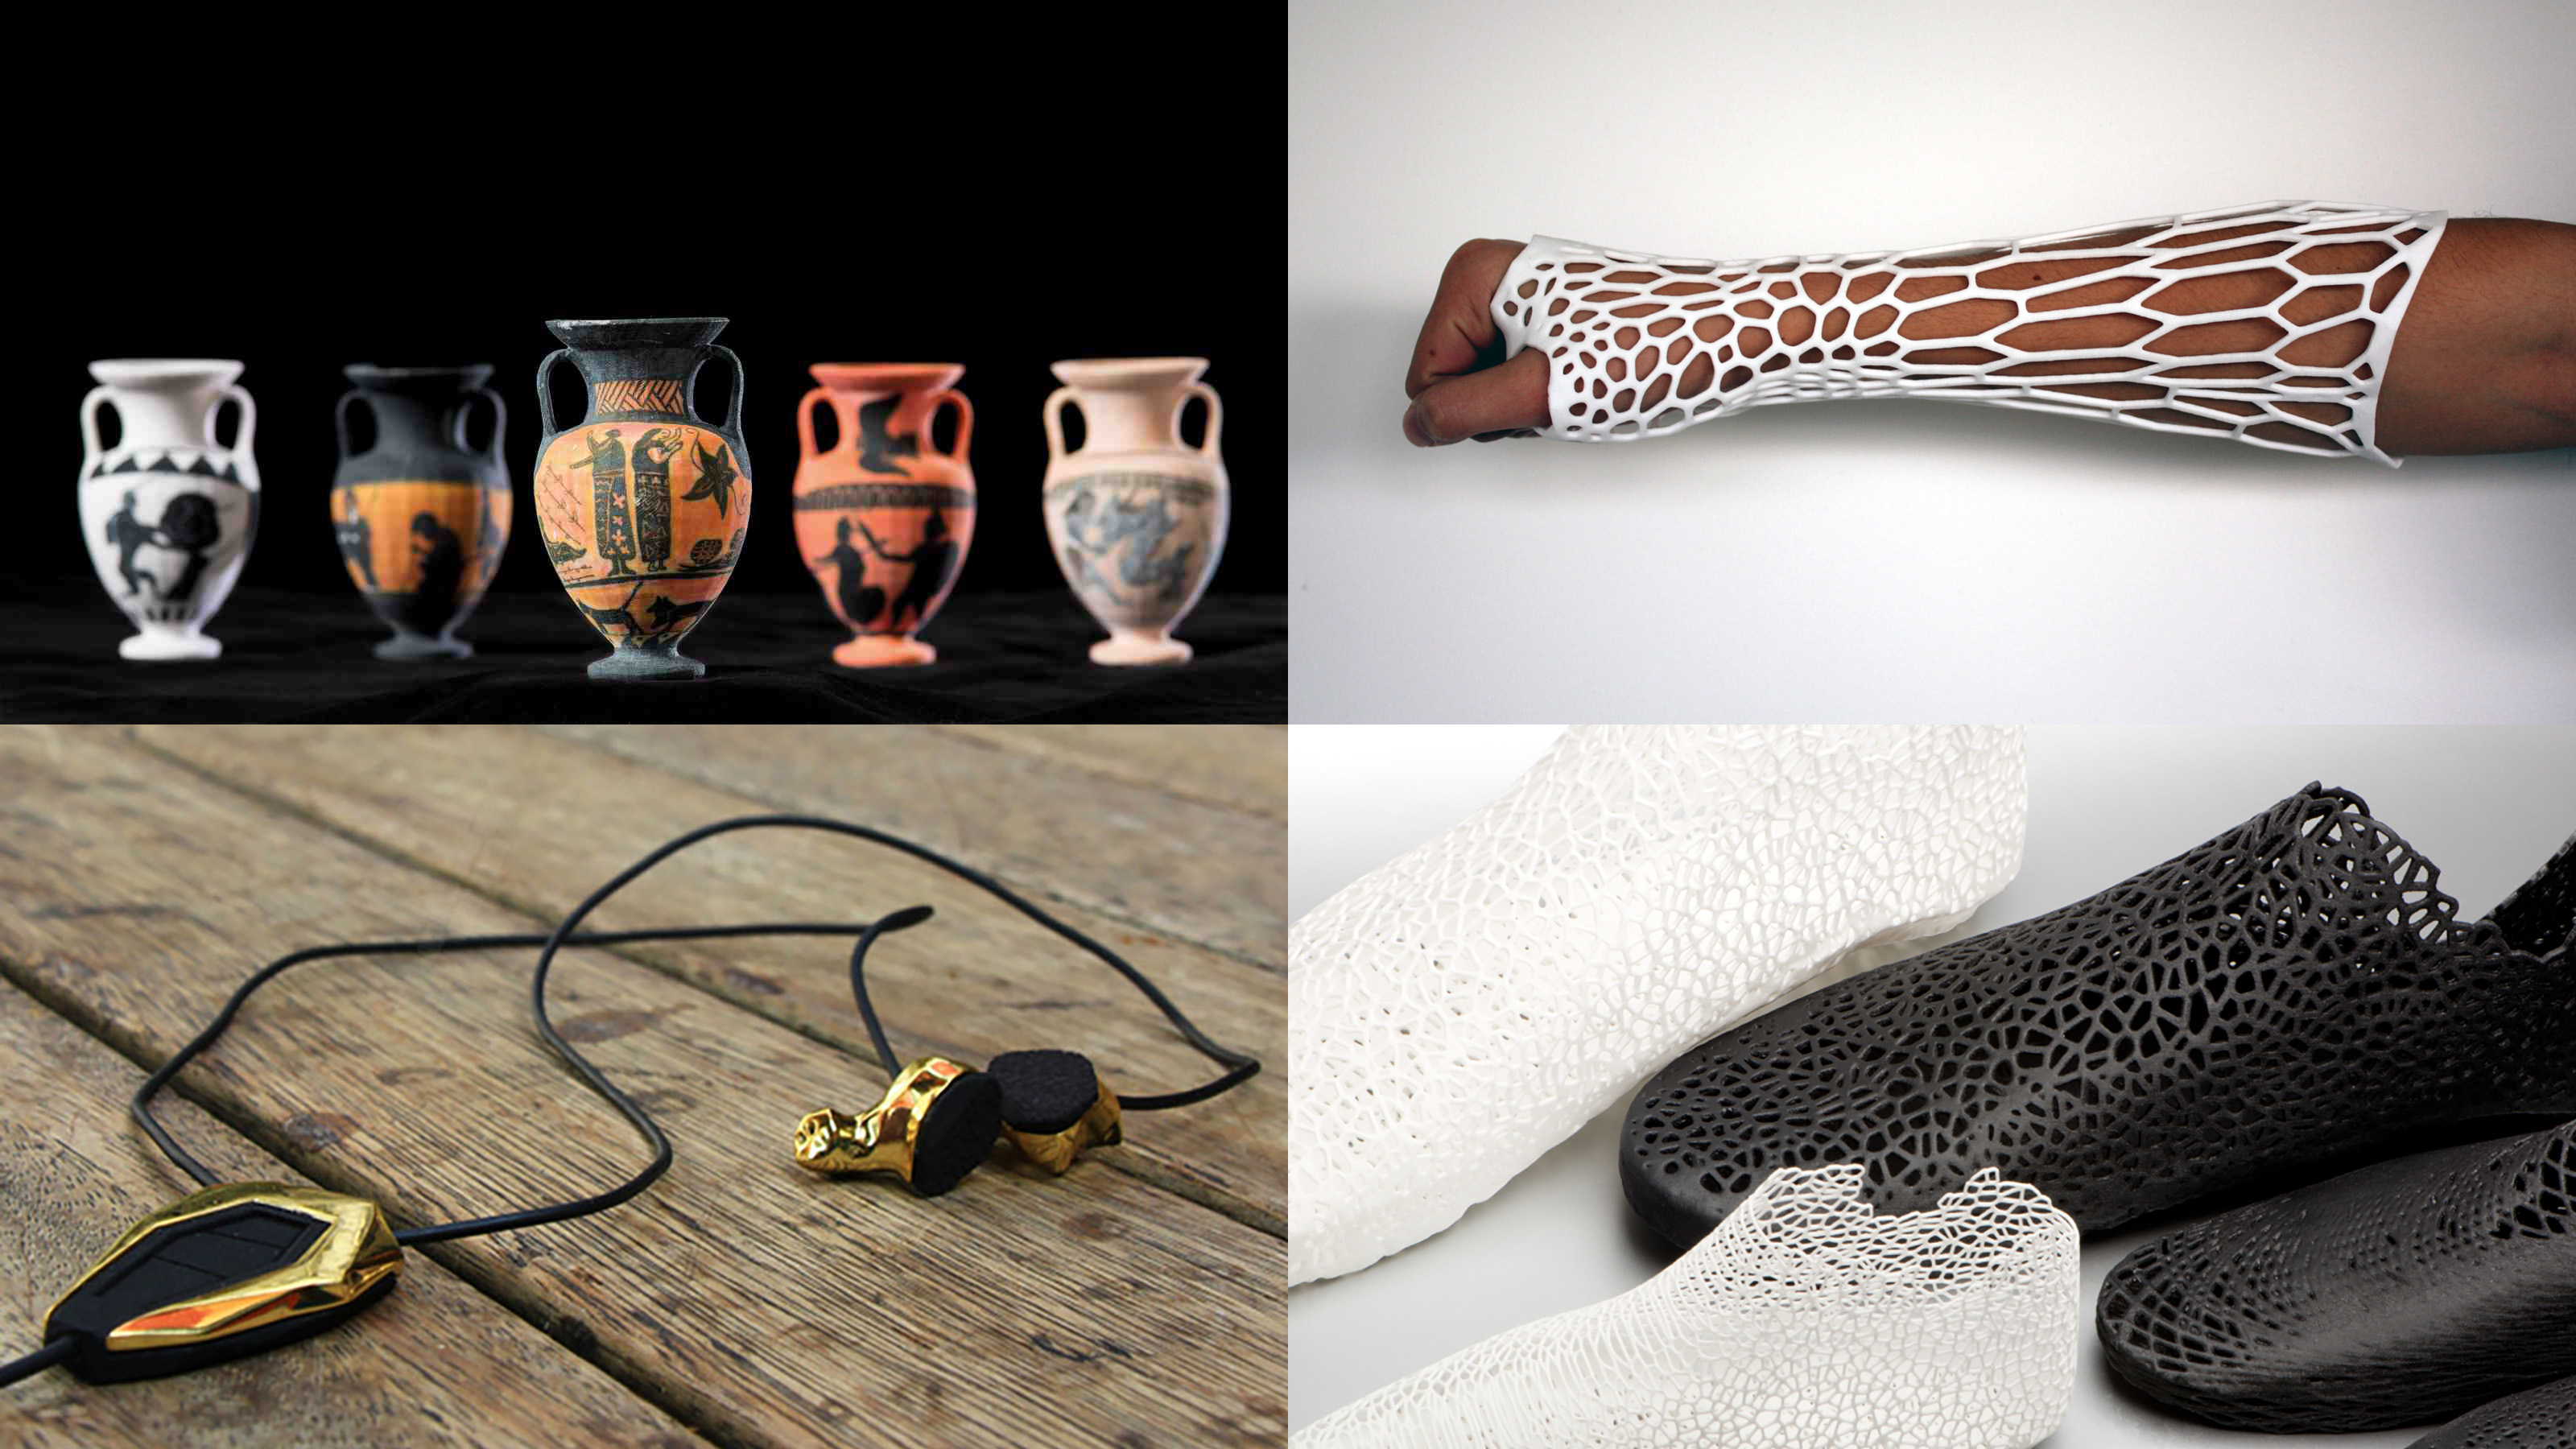 3D printed amphorae, cast, shoes and headphones